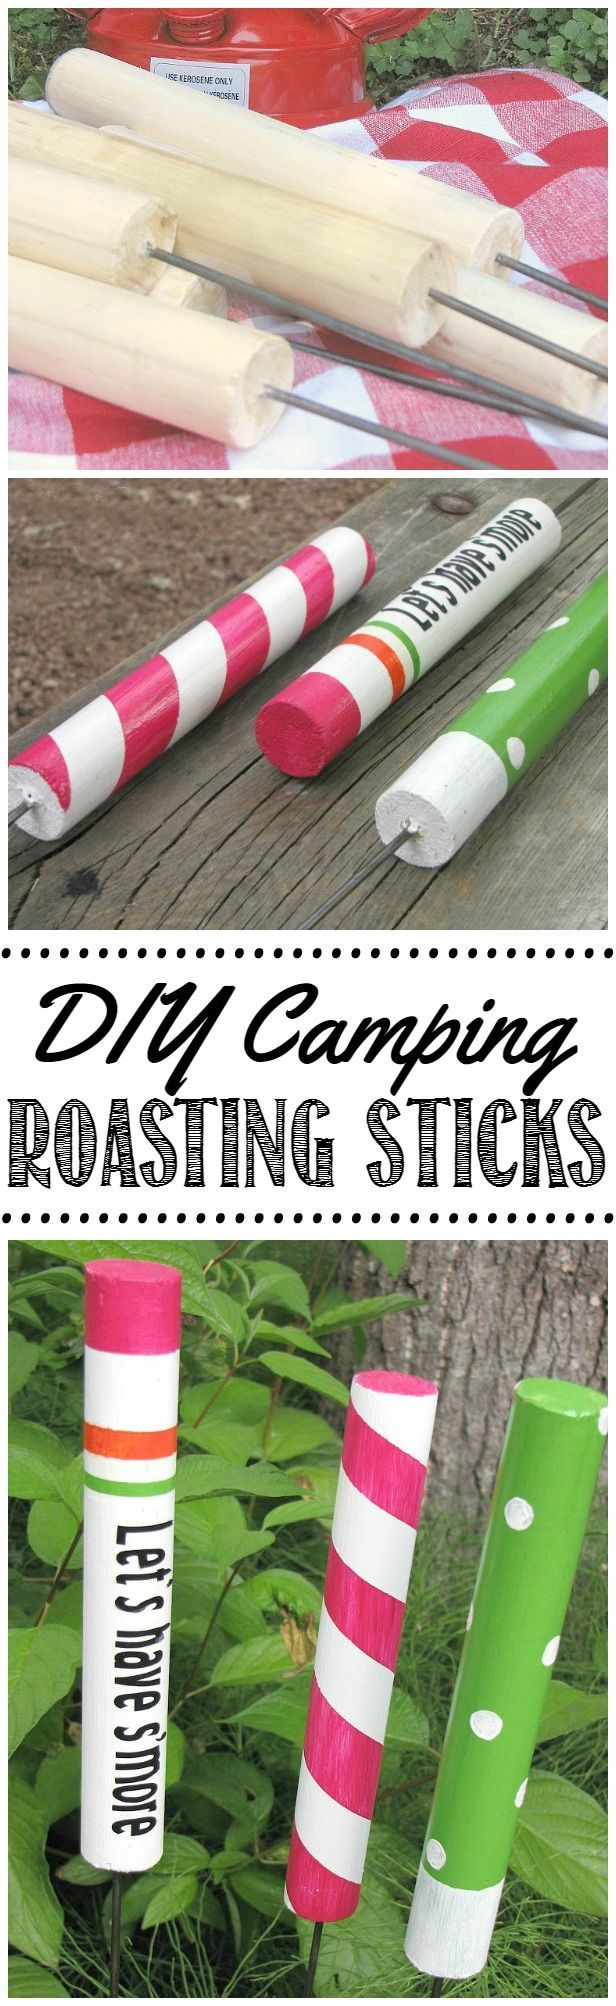 Create your own DIY custom roasting sticks!  Lots of fun for camping or backyard marshmallow roasts!